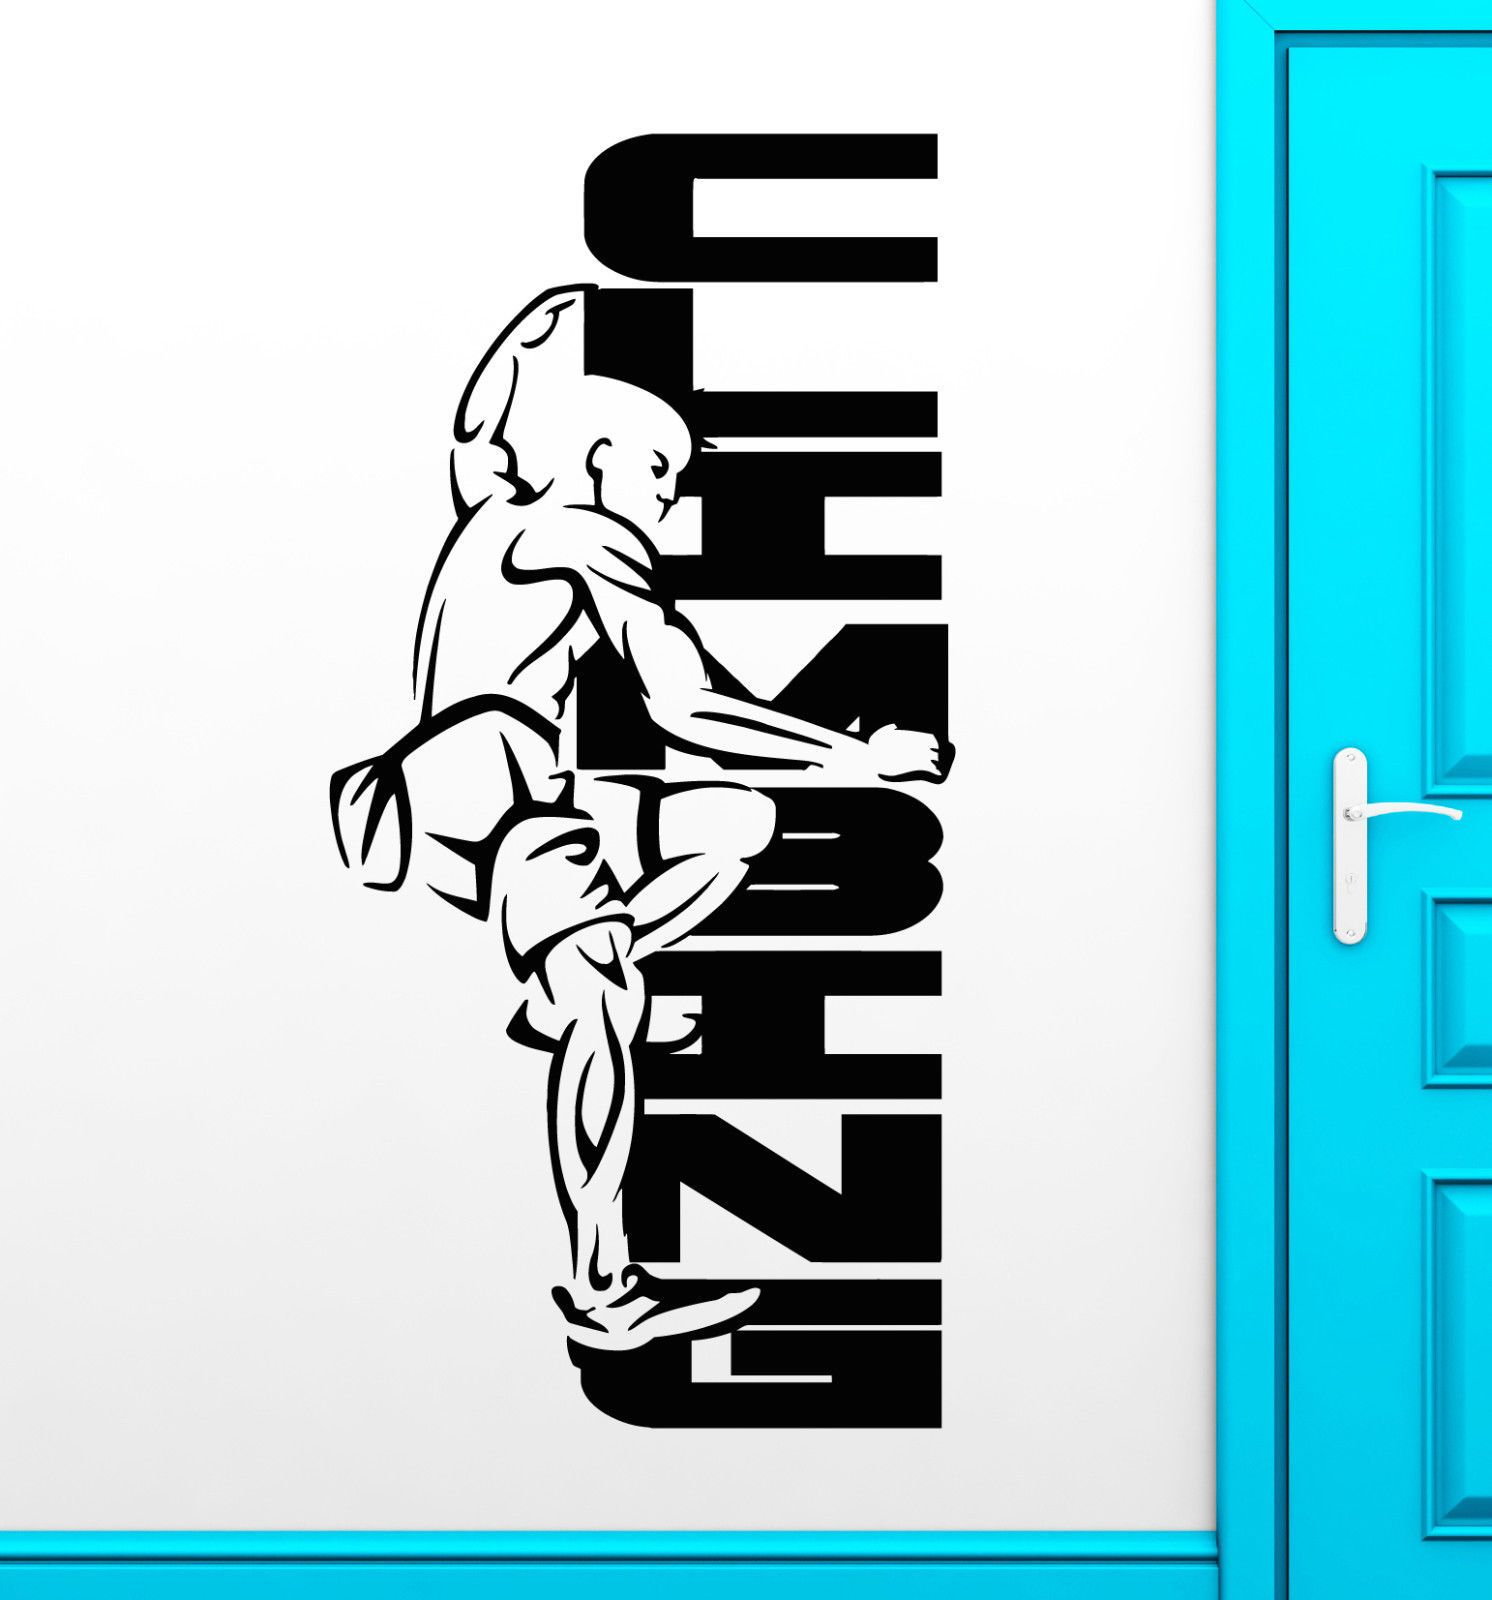 Details about Vinyl Wall Decal Rock Climbing Logo Extreme